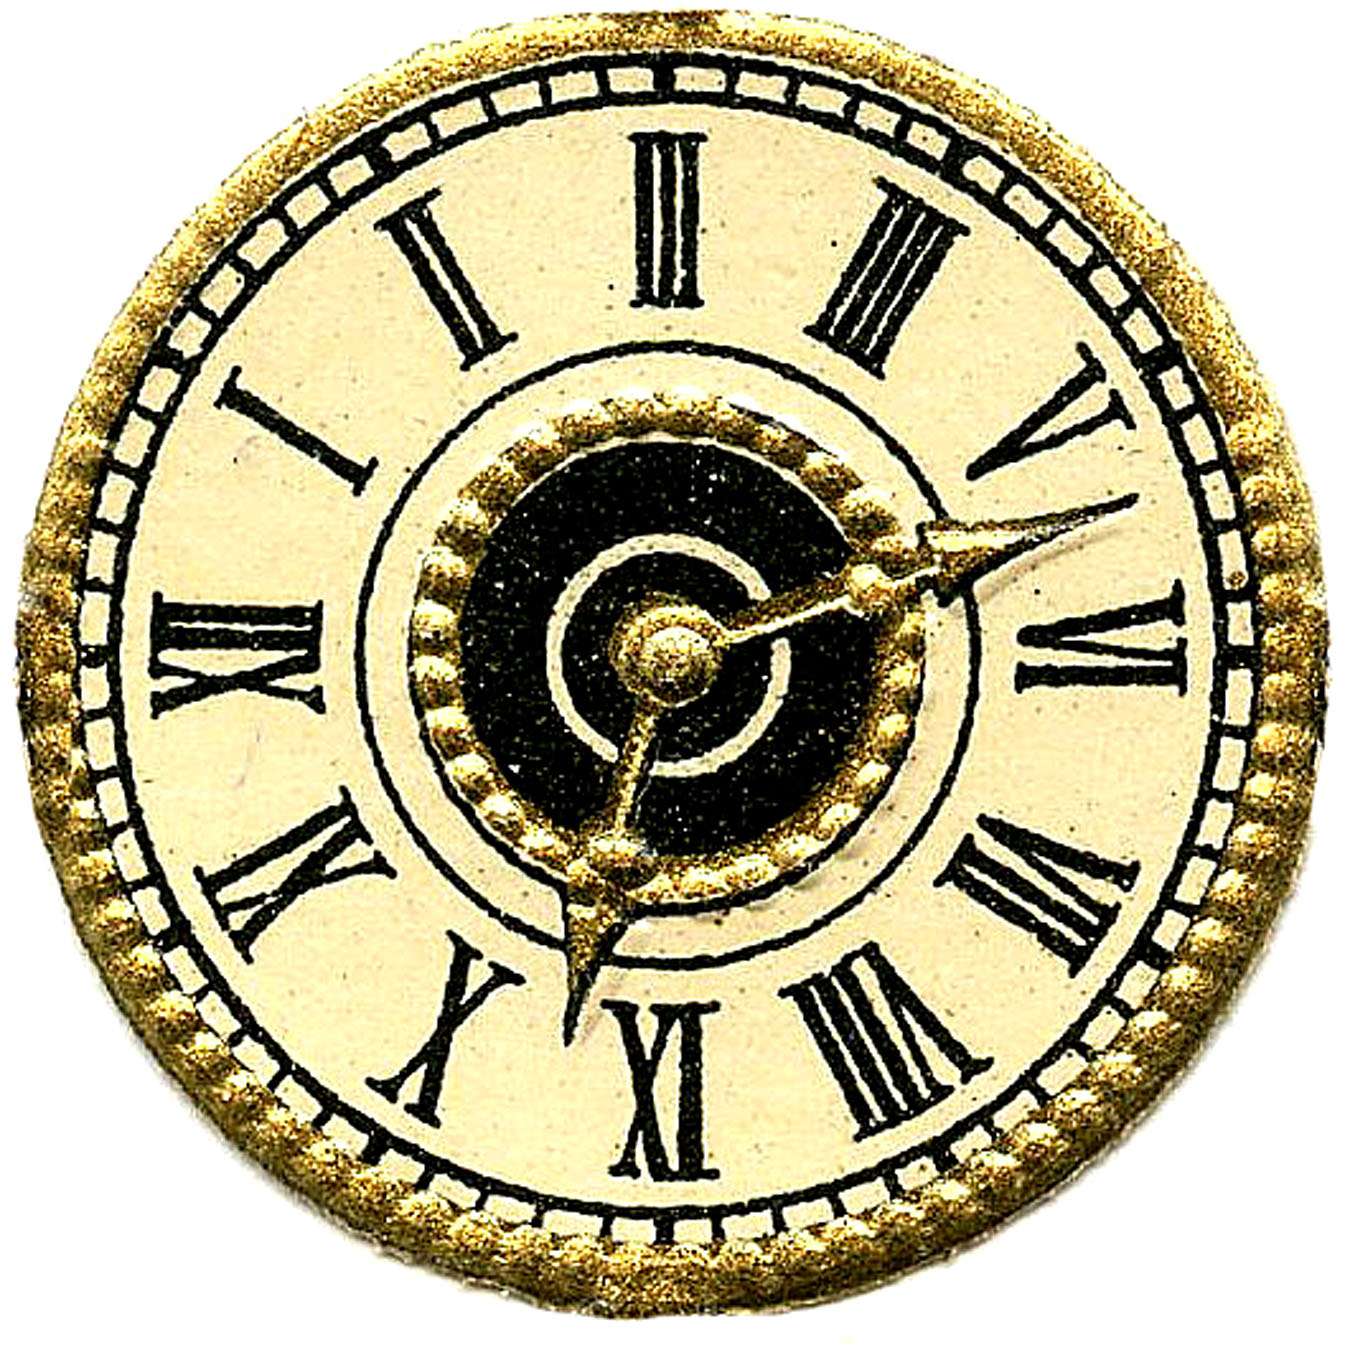 Vintage Images - More Cute Clock Faces - Steampunk - The ...